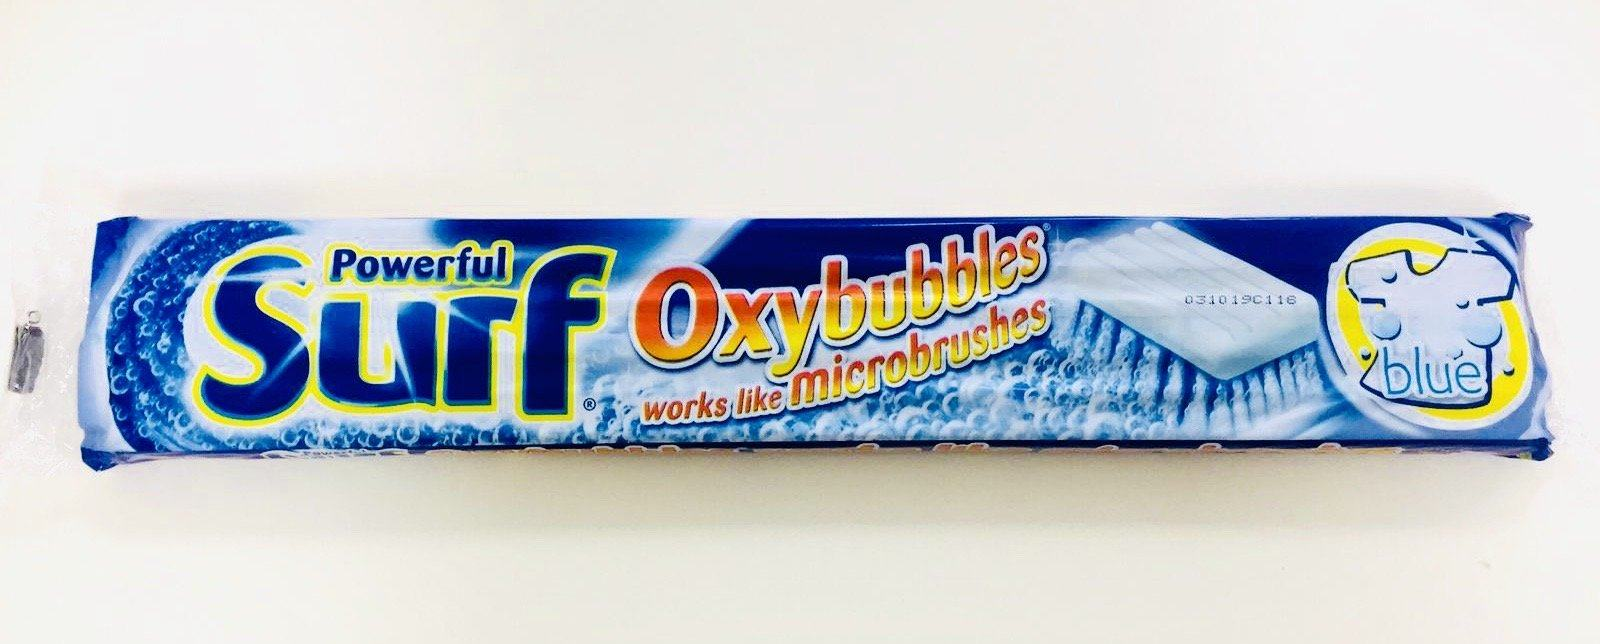 Surf Powerful Oxybubbles works like Microbrushes BLUE 380g